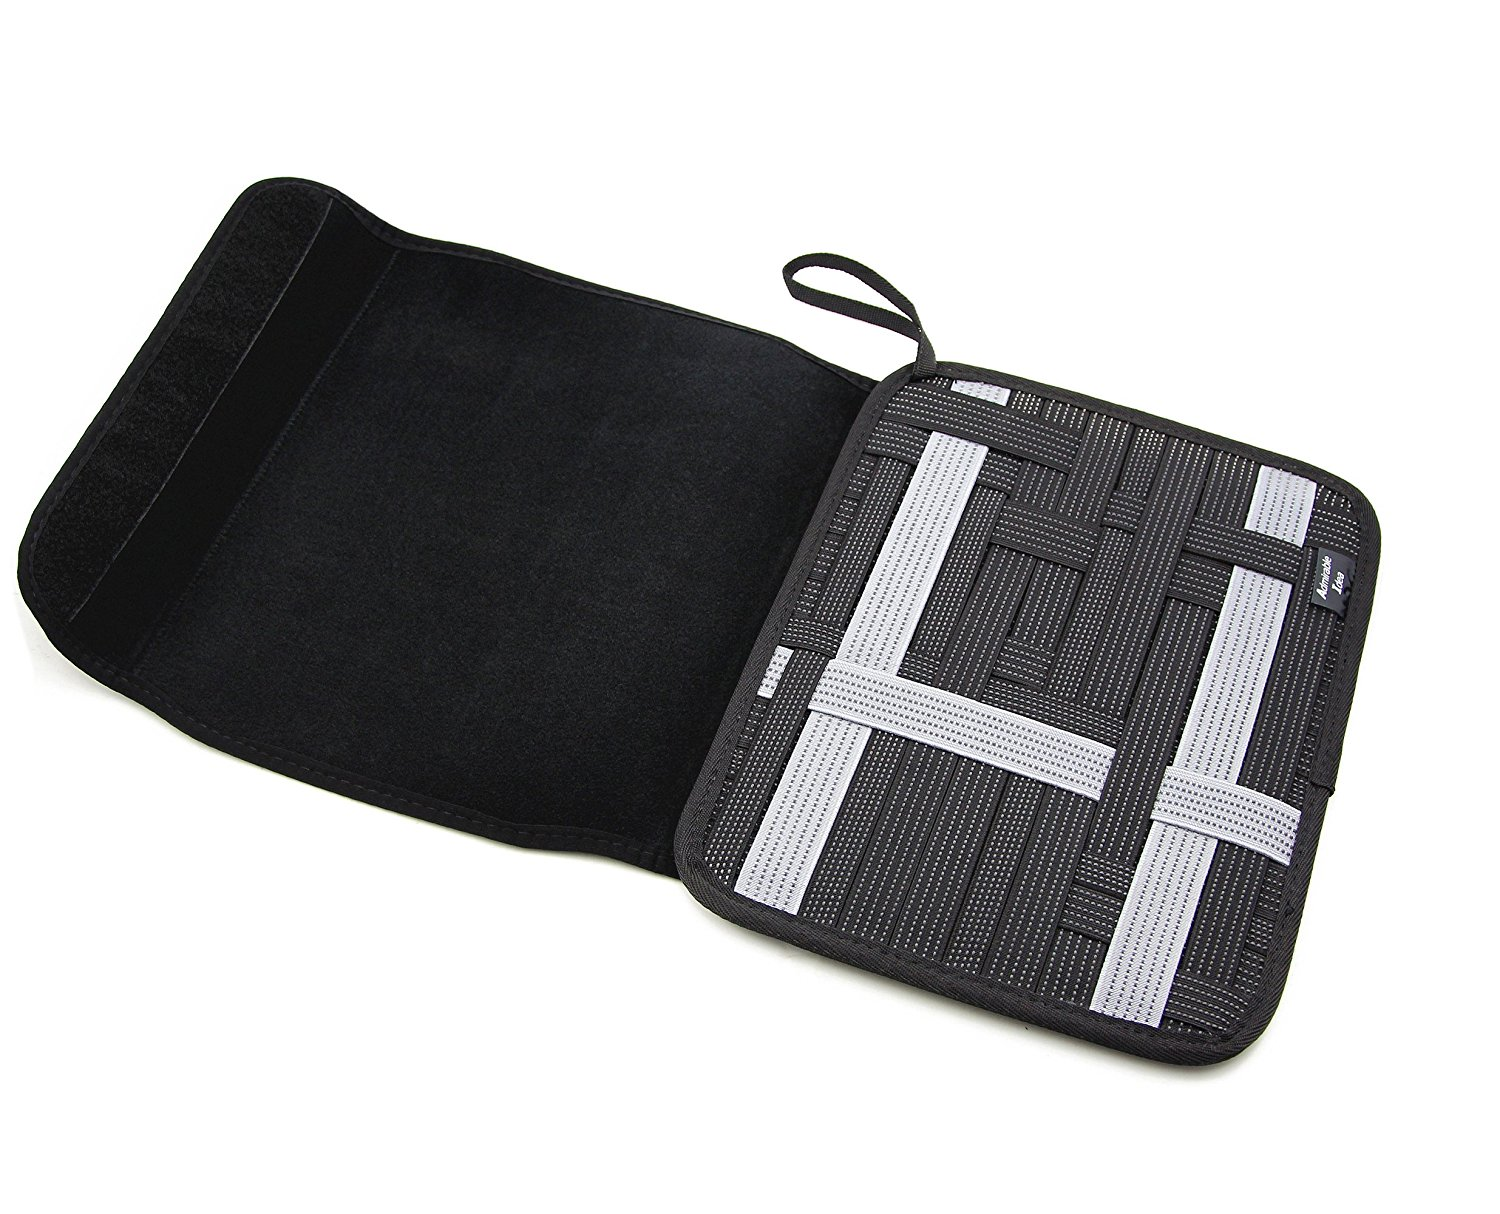 Admirable Idea Travel Cable Organizer Board with Sleeve Pouch for iPad,Electronic Organizer Management for... by Admirable Idea